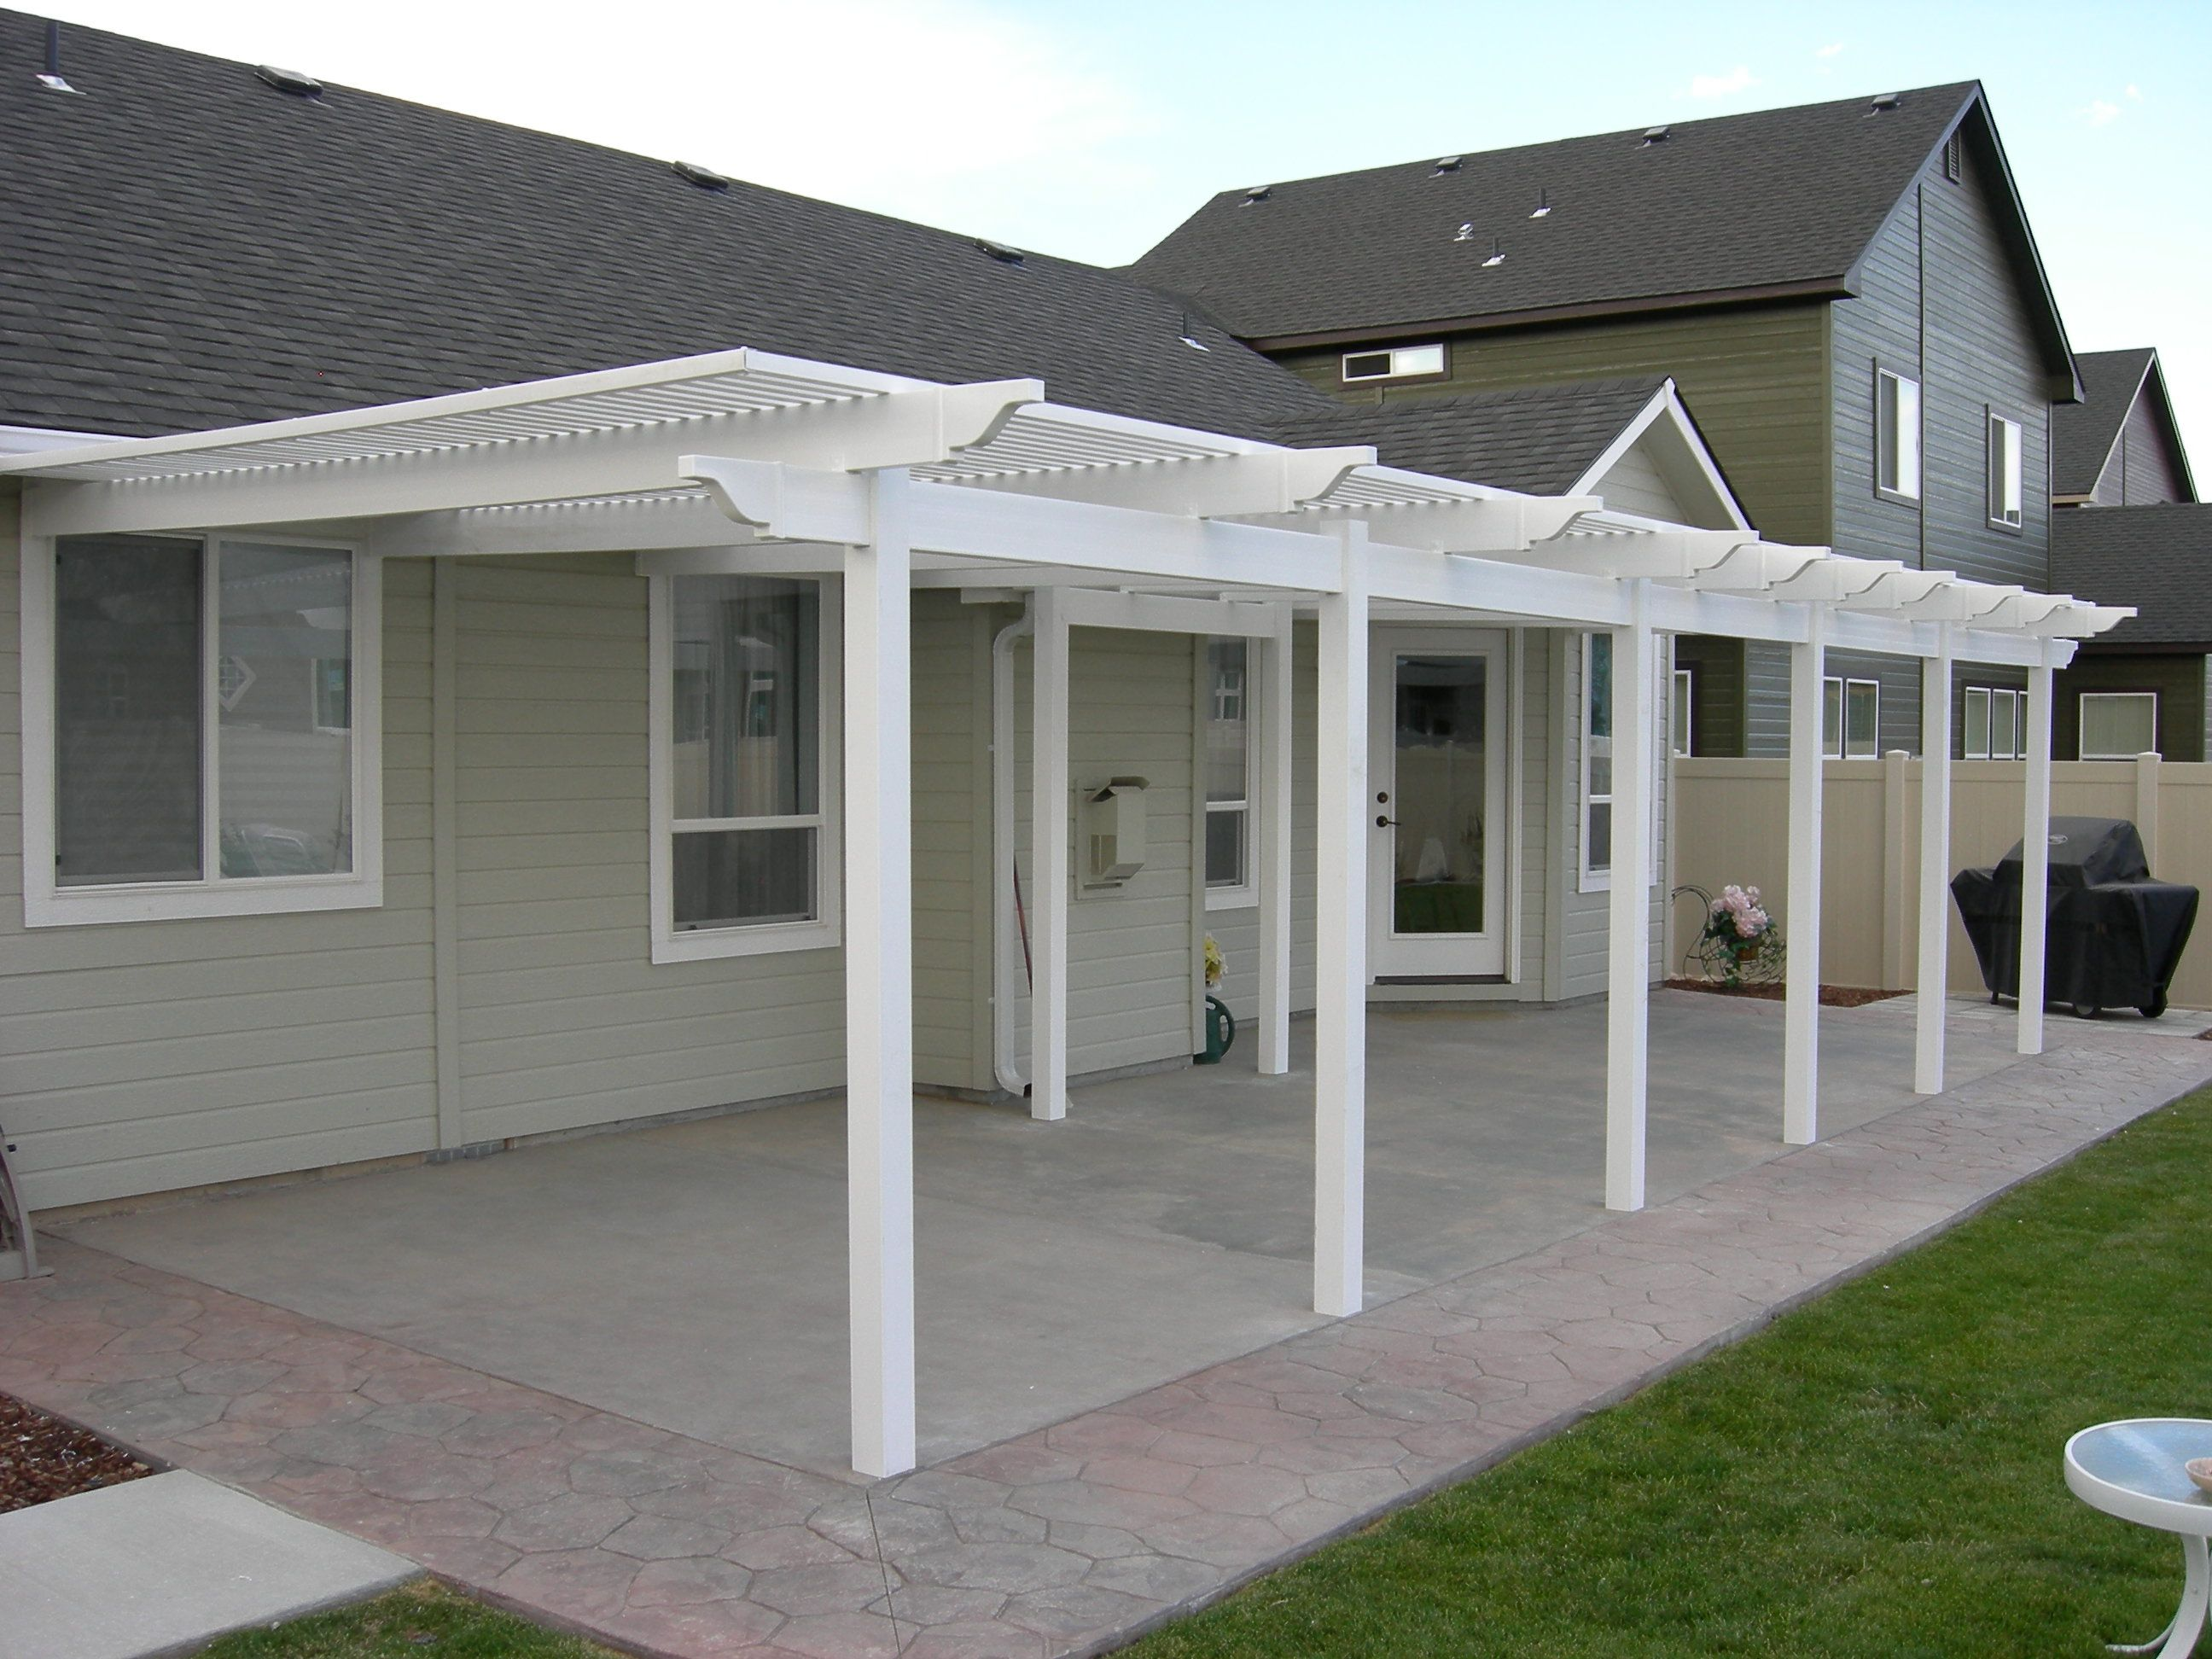 Patio pictures patio covers white ideas for the for Patio cover ideas designs